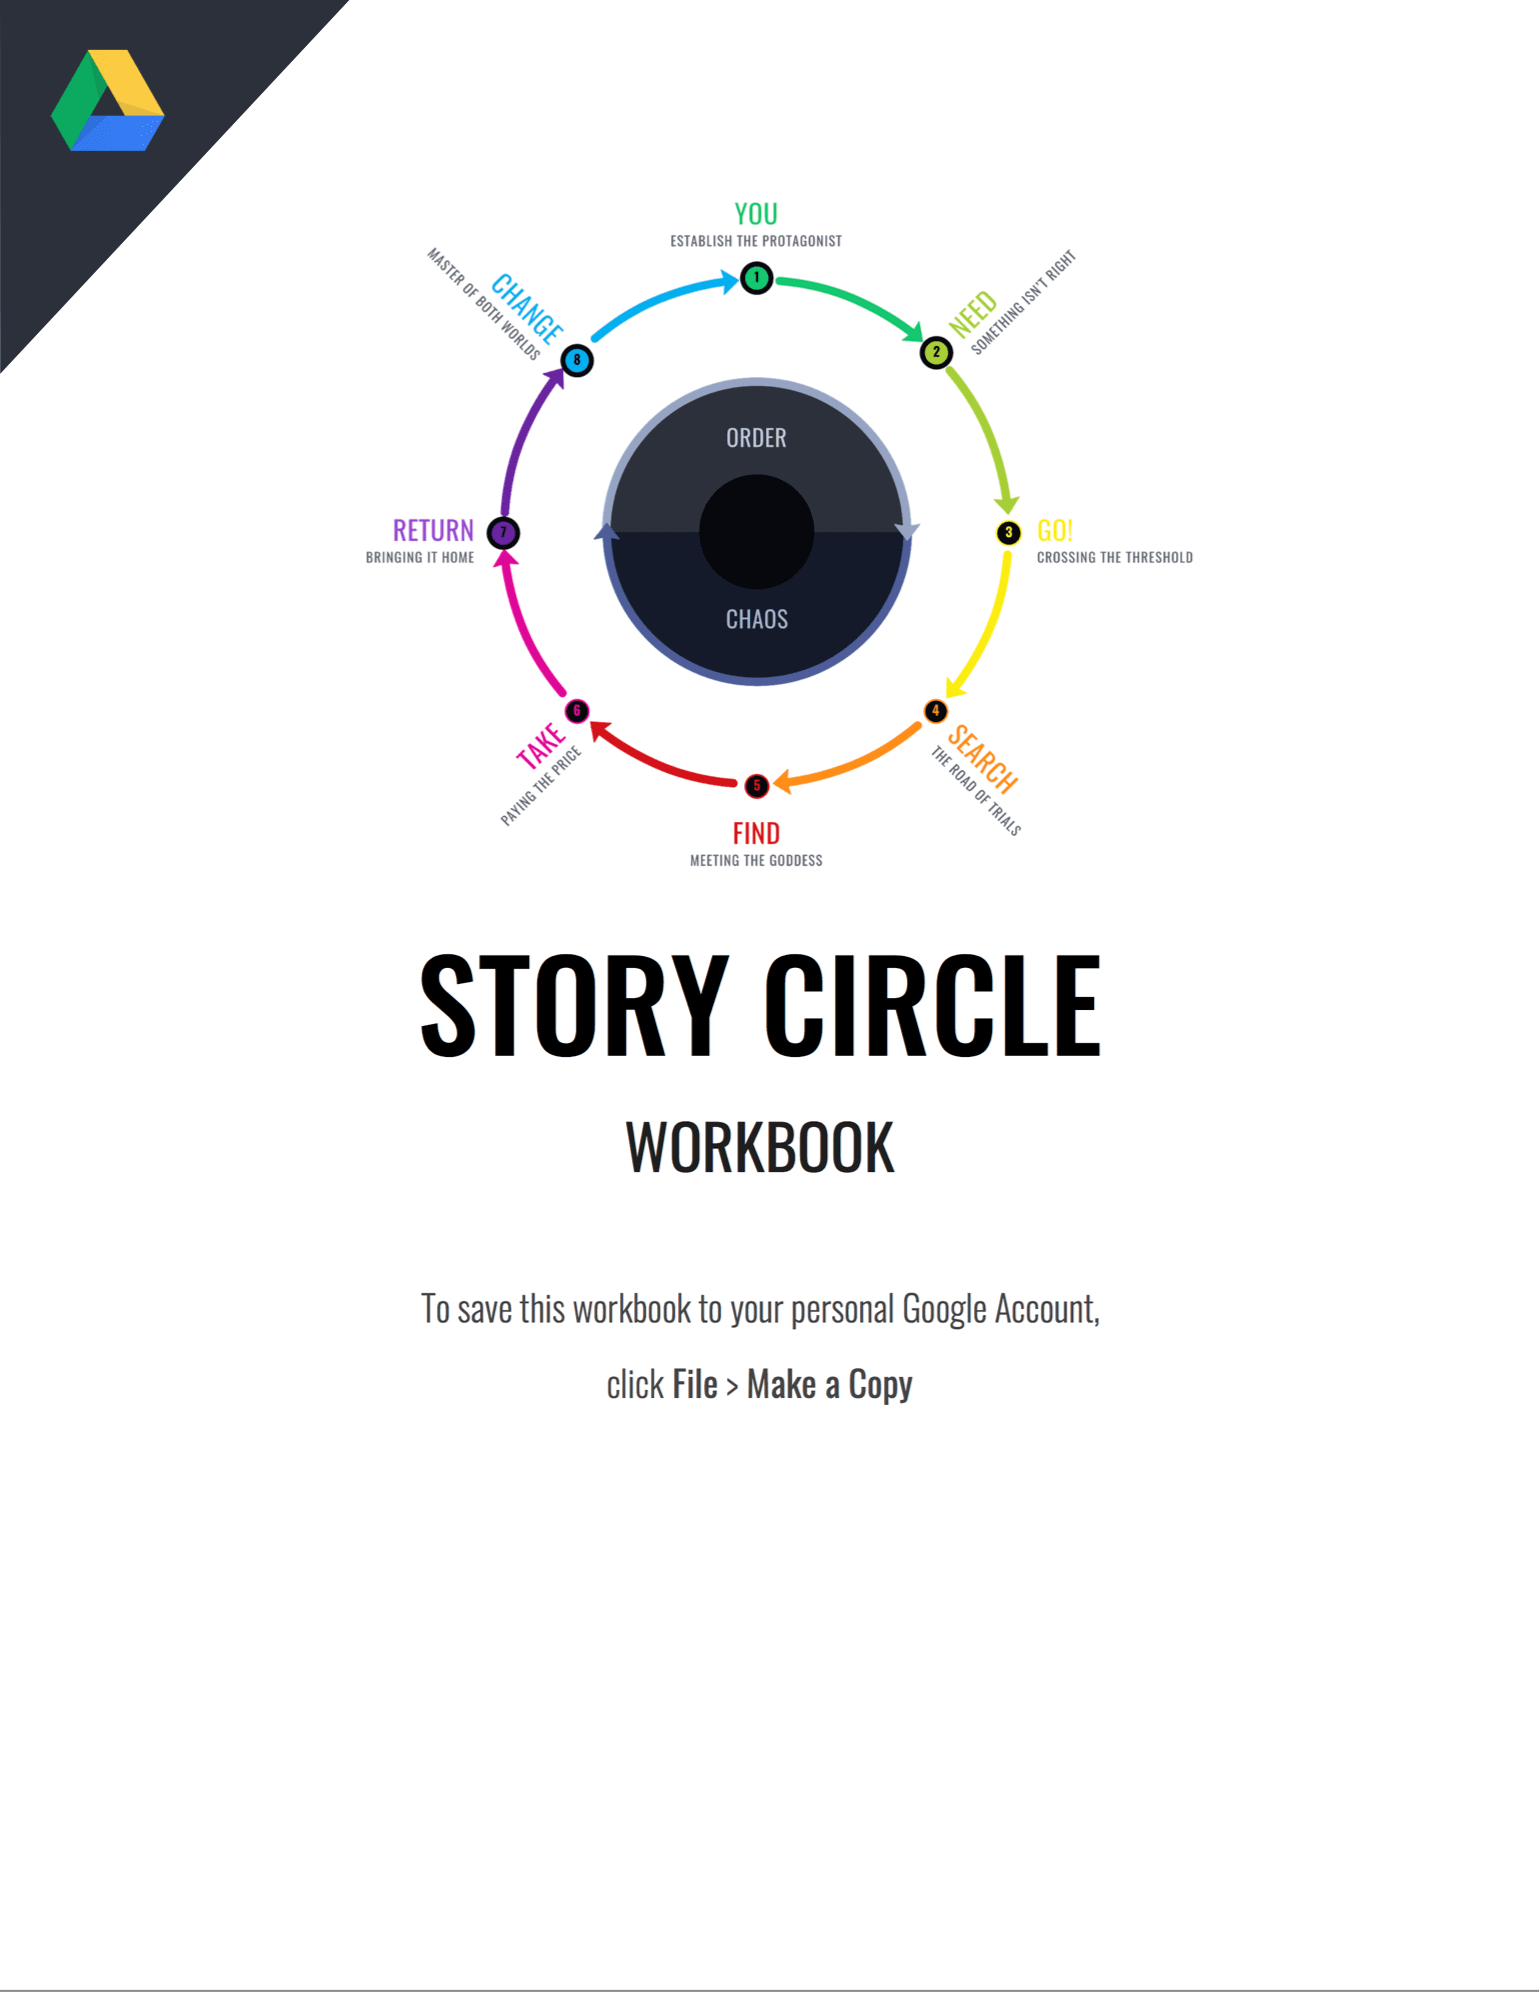 Story Circle Google Drive Worksheet v2 - StudioBinder